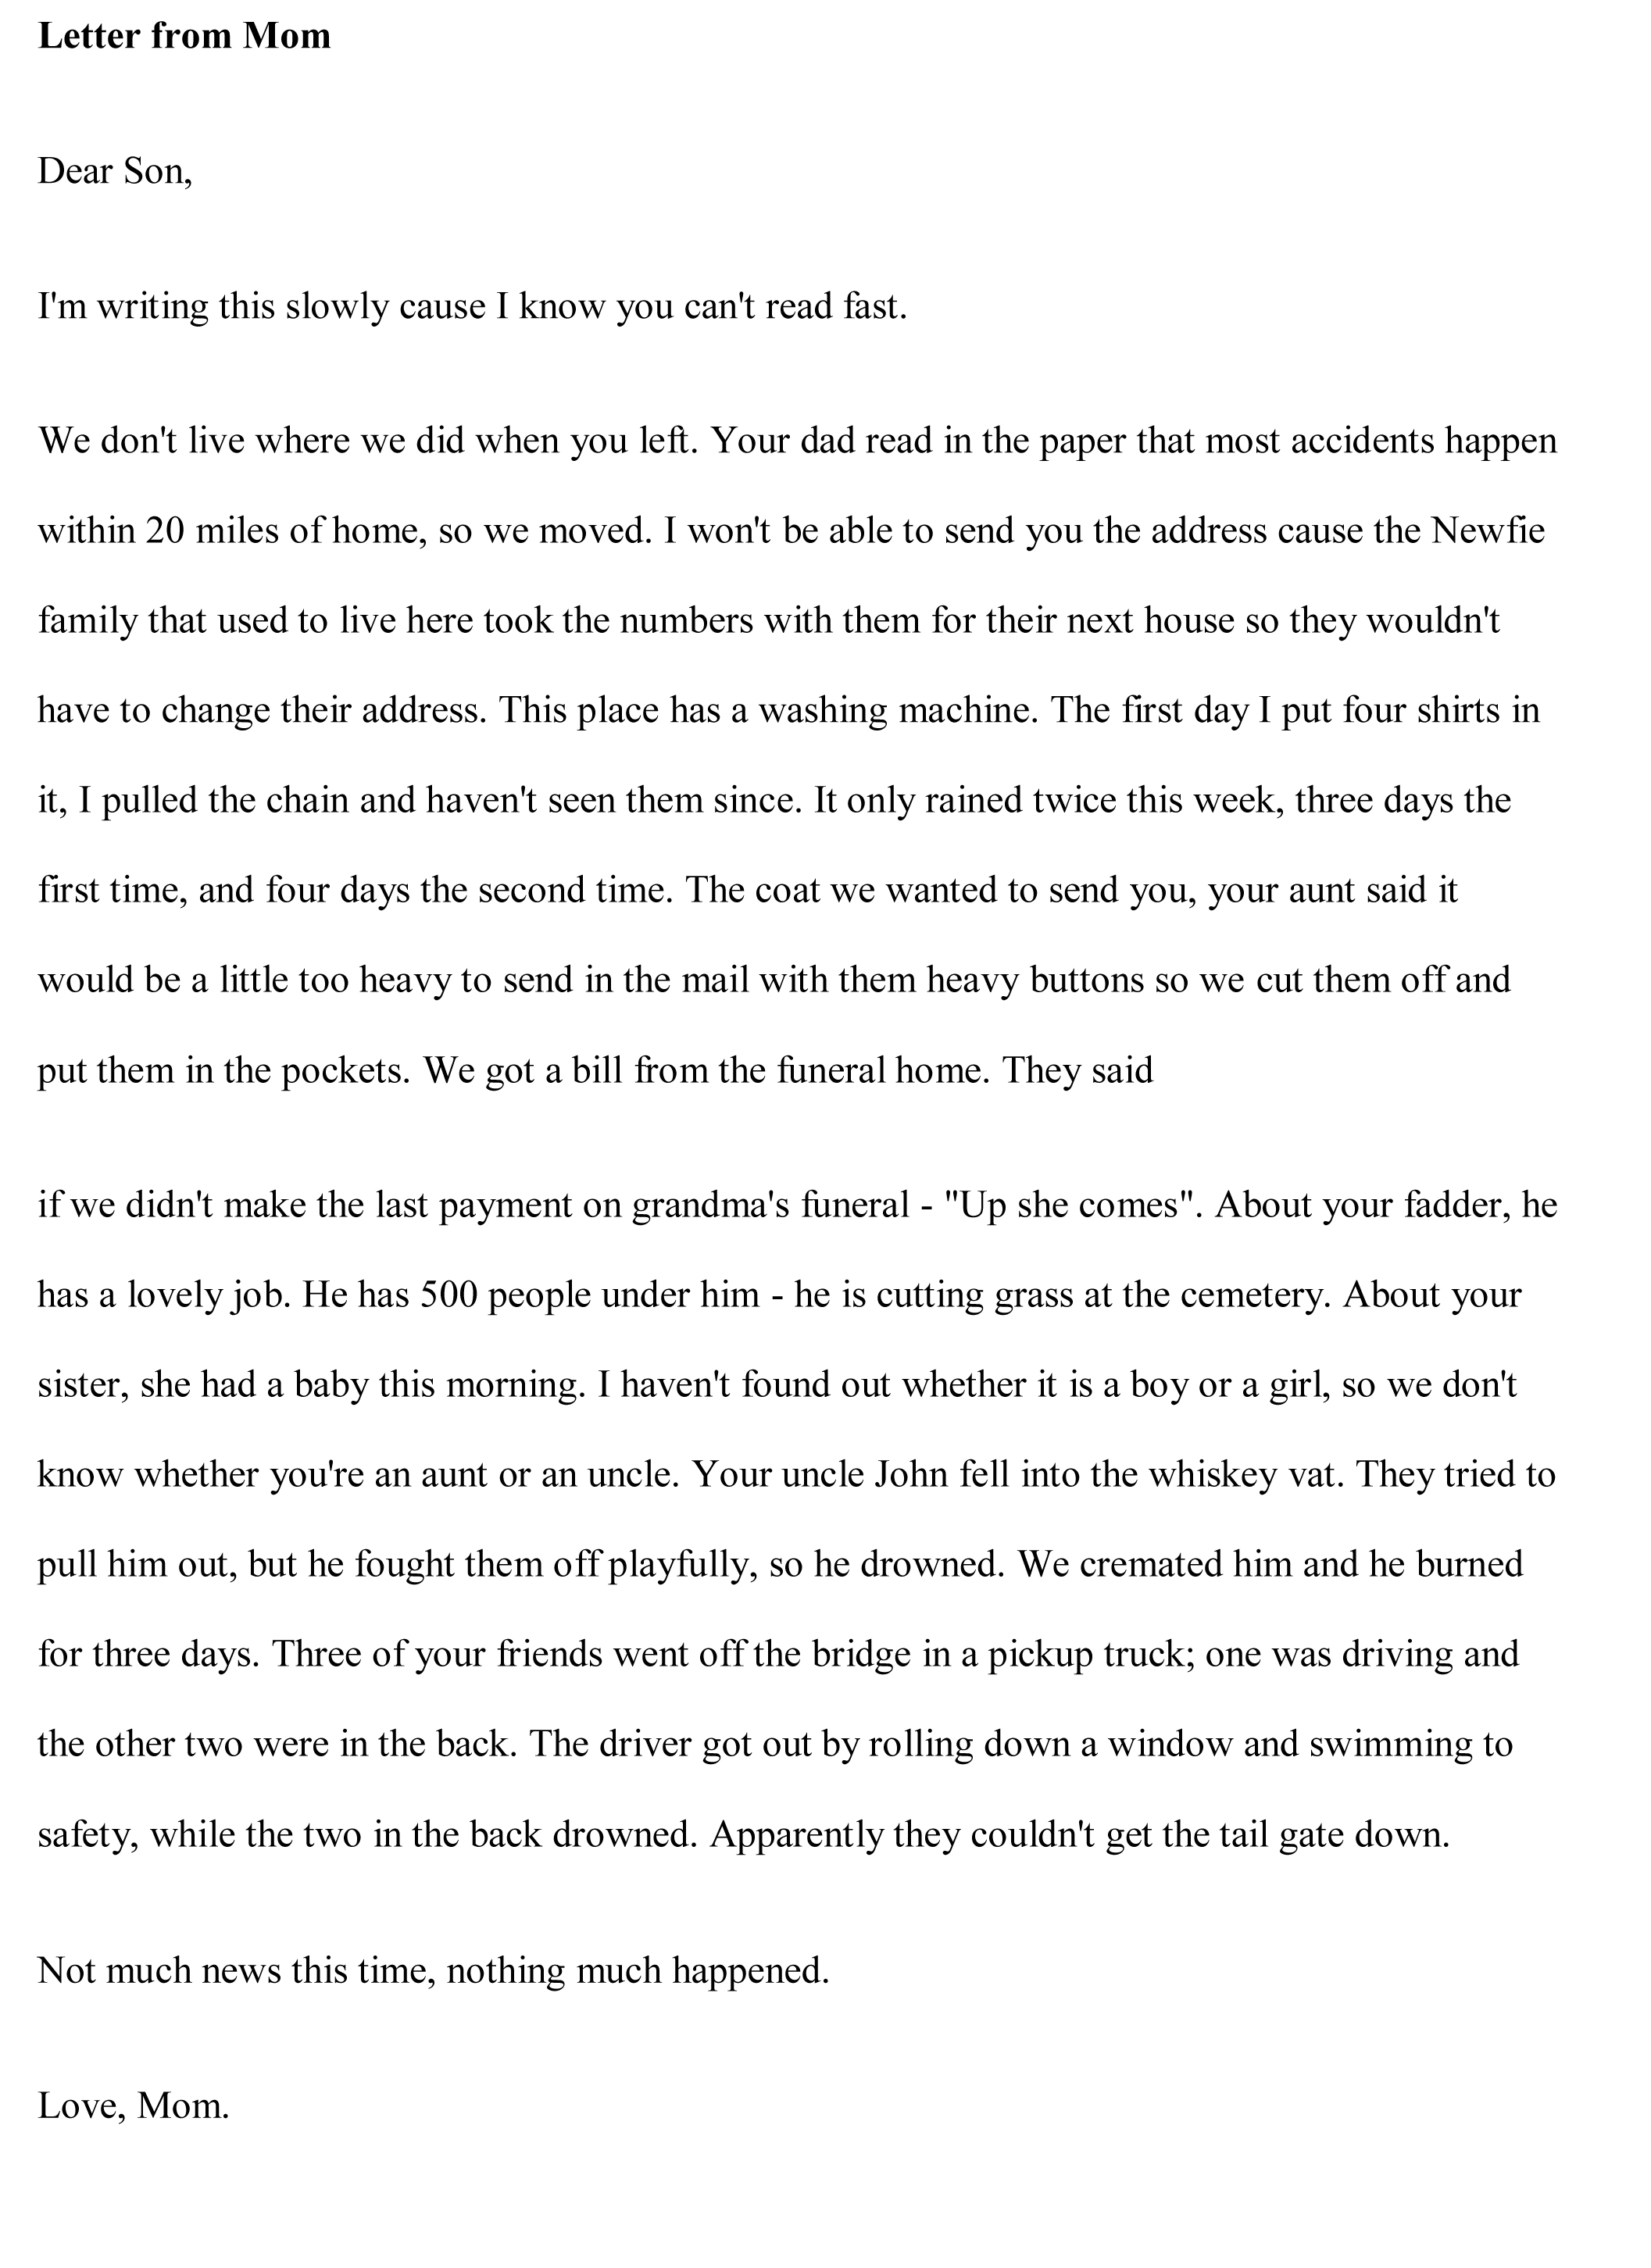 009 Funny Essay Free Sample Example What Is An Top Informative The Main Purpose Of Full